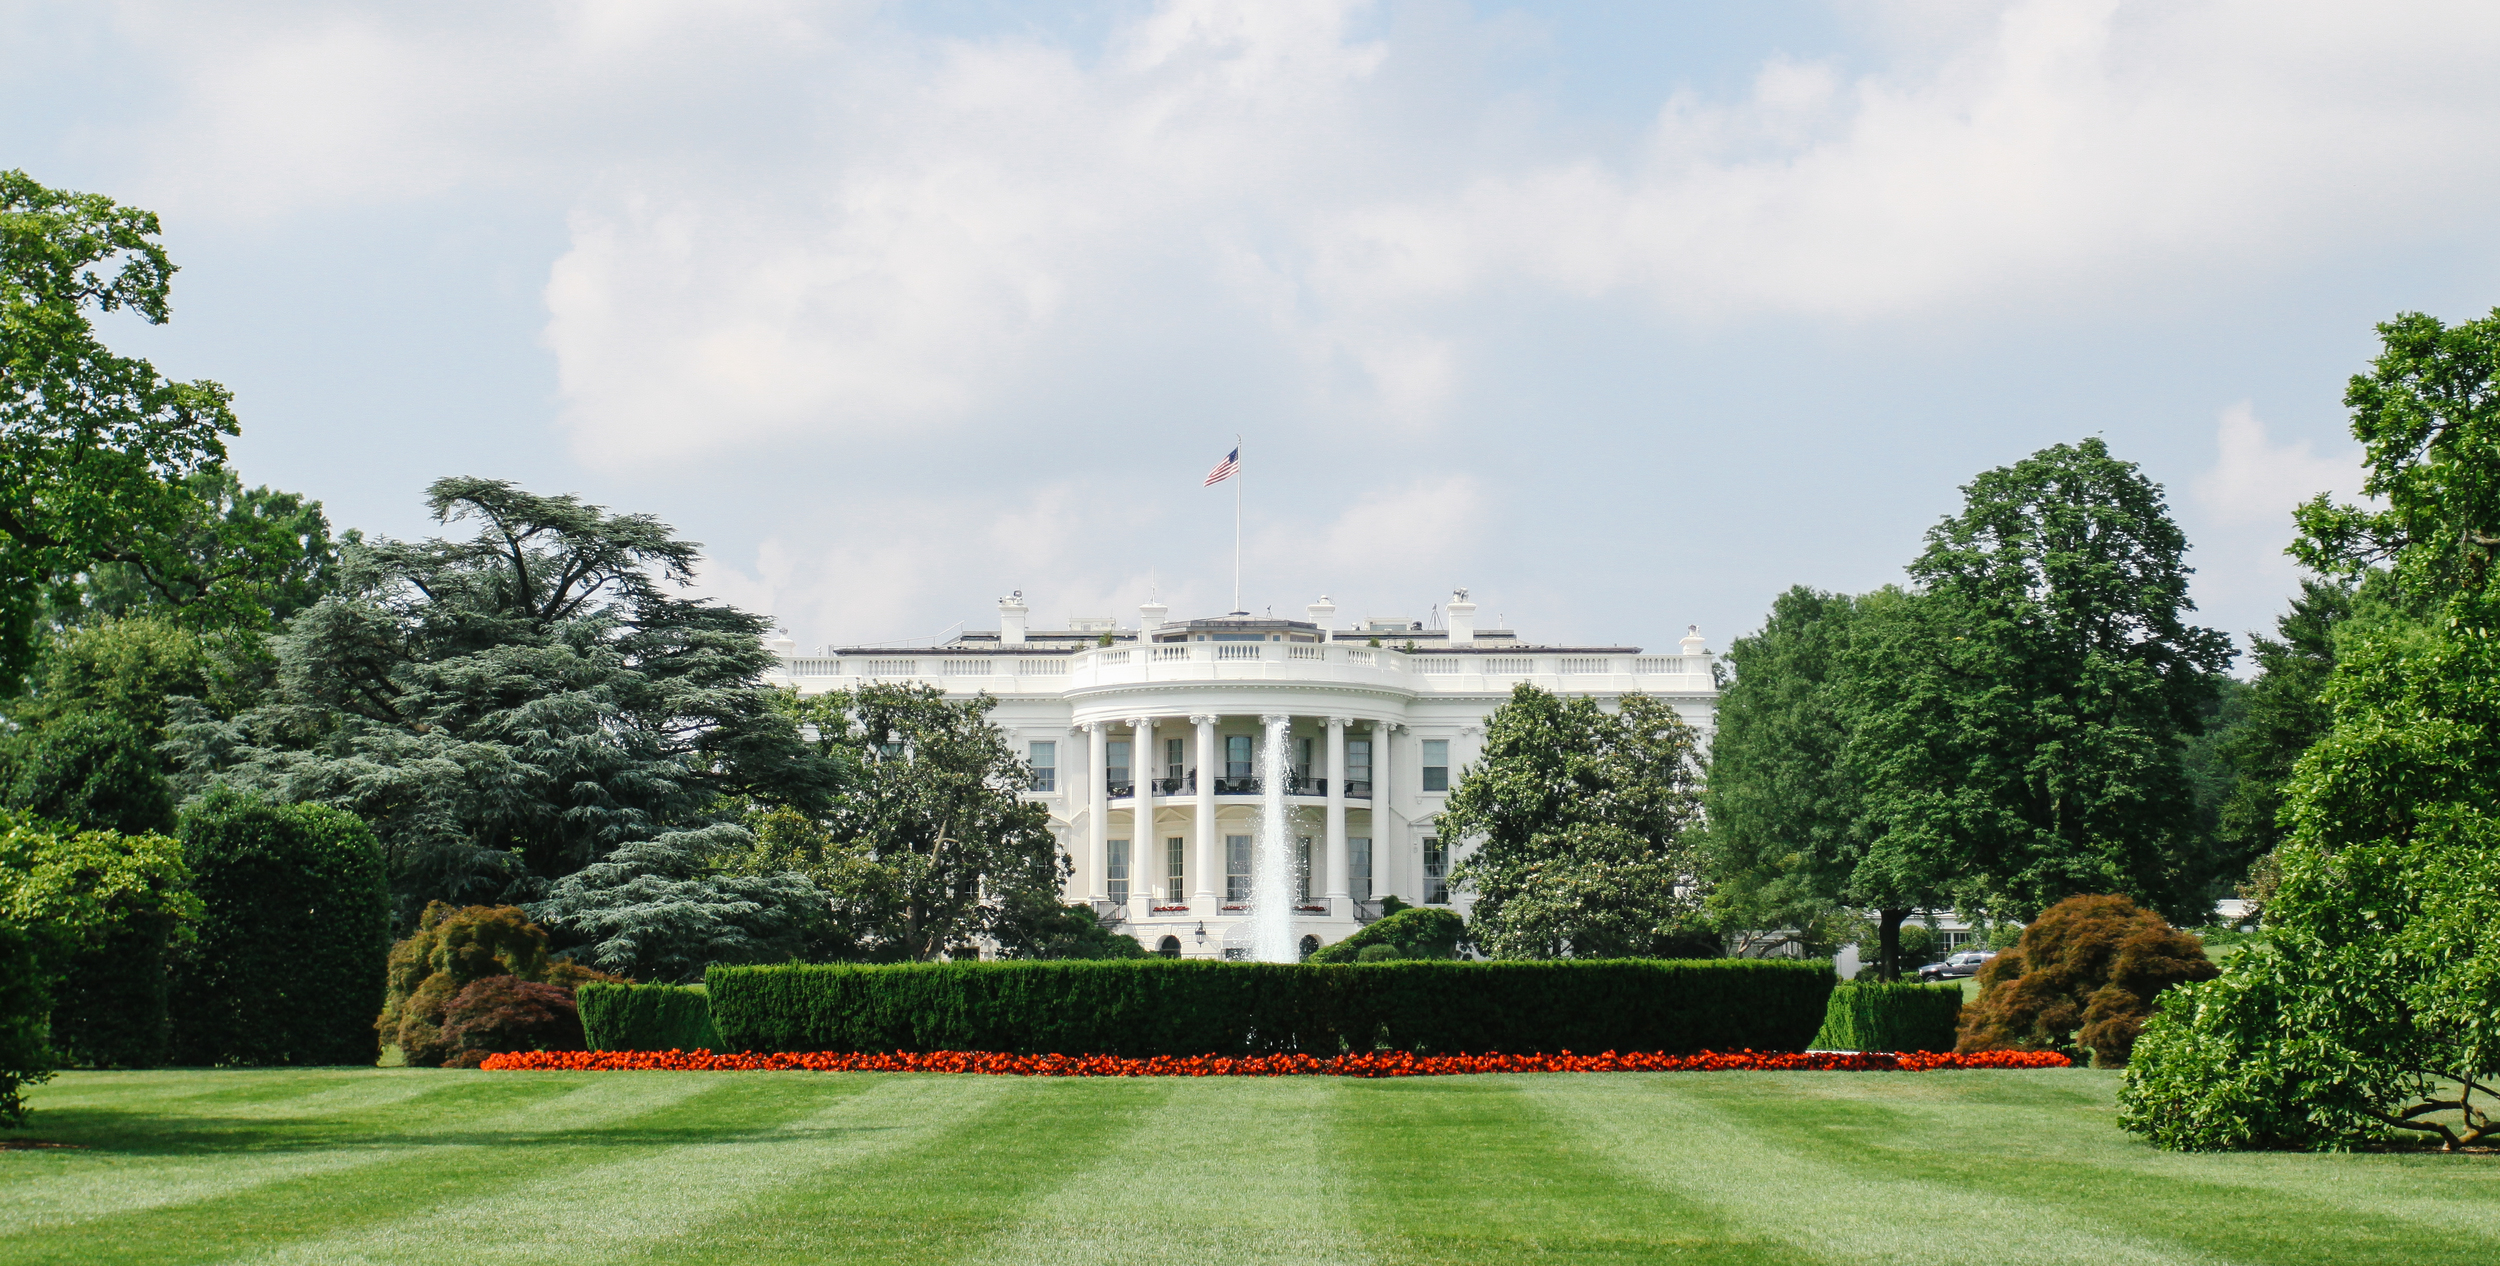 The White House from the South Lawn. (Photo by Ophelia Ding)